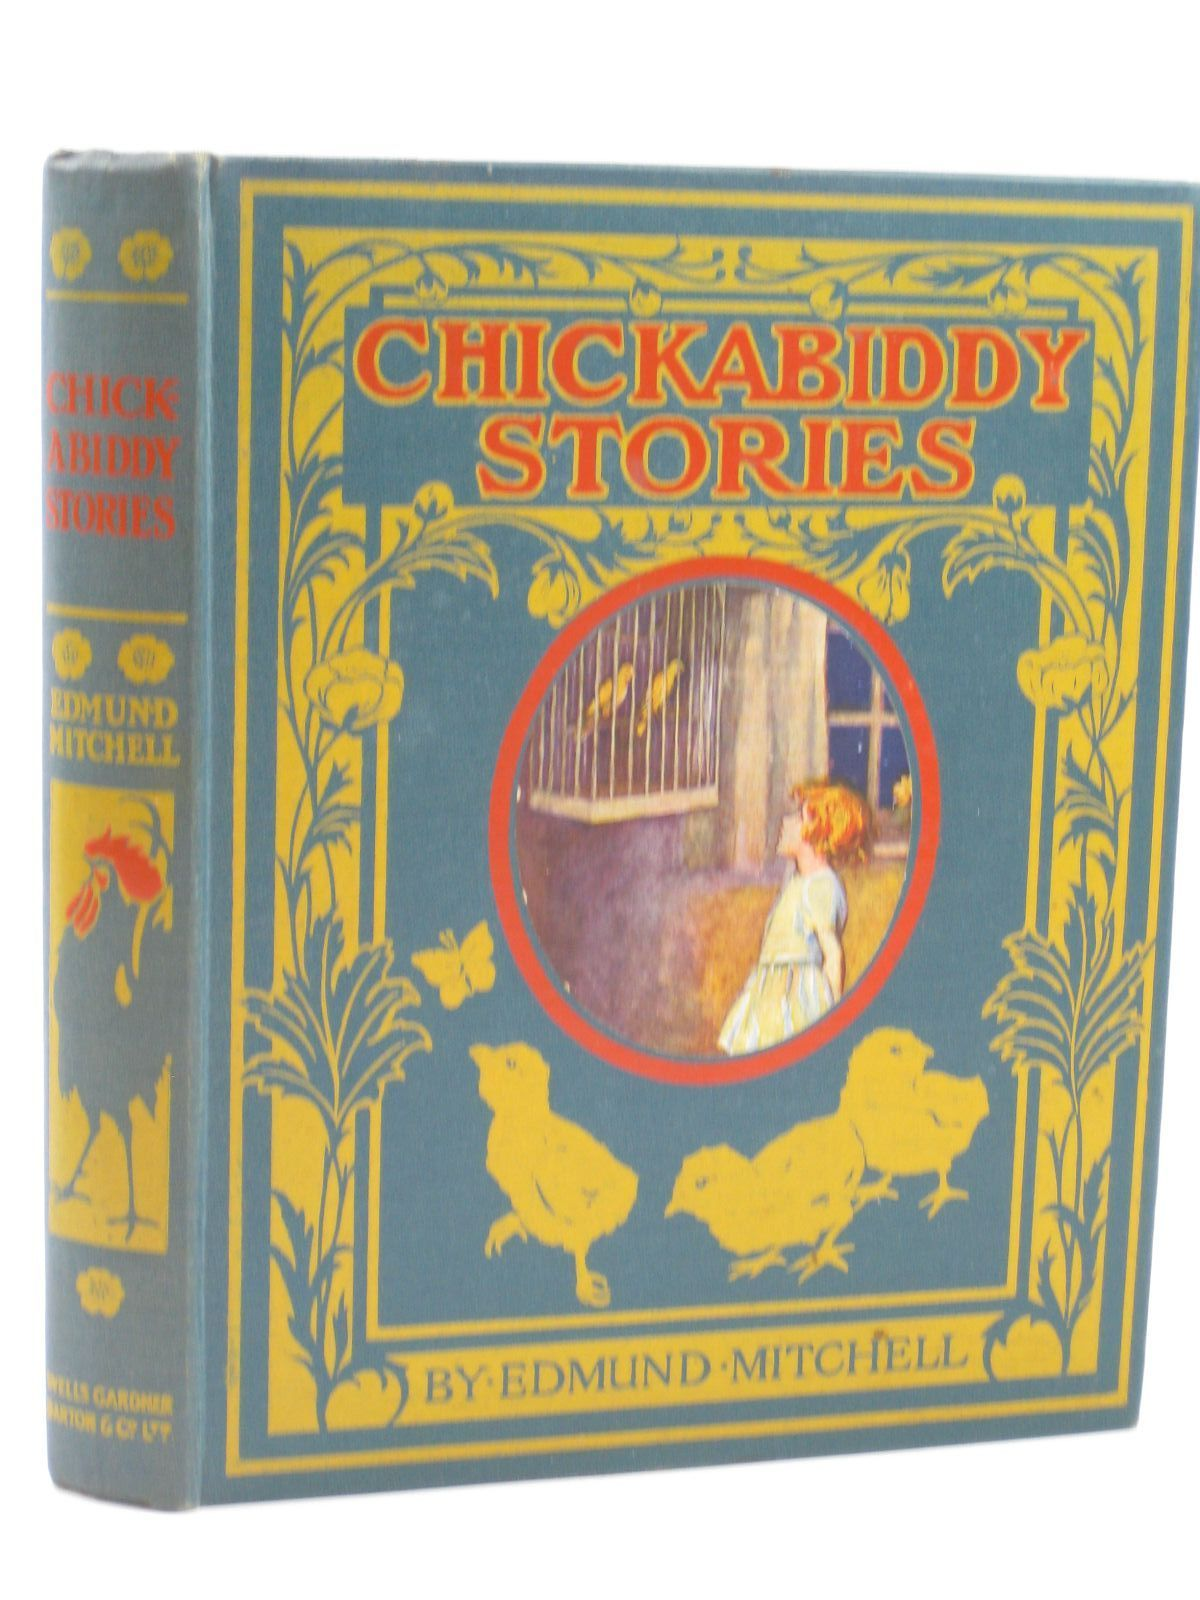 Photo of CHICKABIDDY STORIES written by Mitchell, Edmund illustrated by Barham, S. published by Wells Gardner, Darton & Co. Ltd. (STOCK CODE: 1506902)  for sale by Stella & Rose's Books